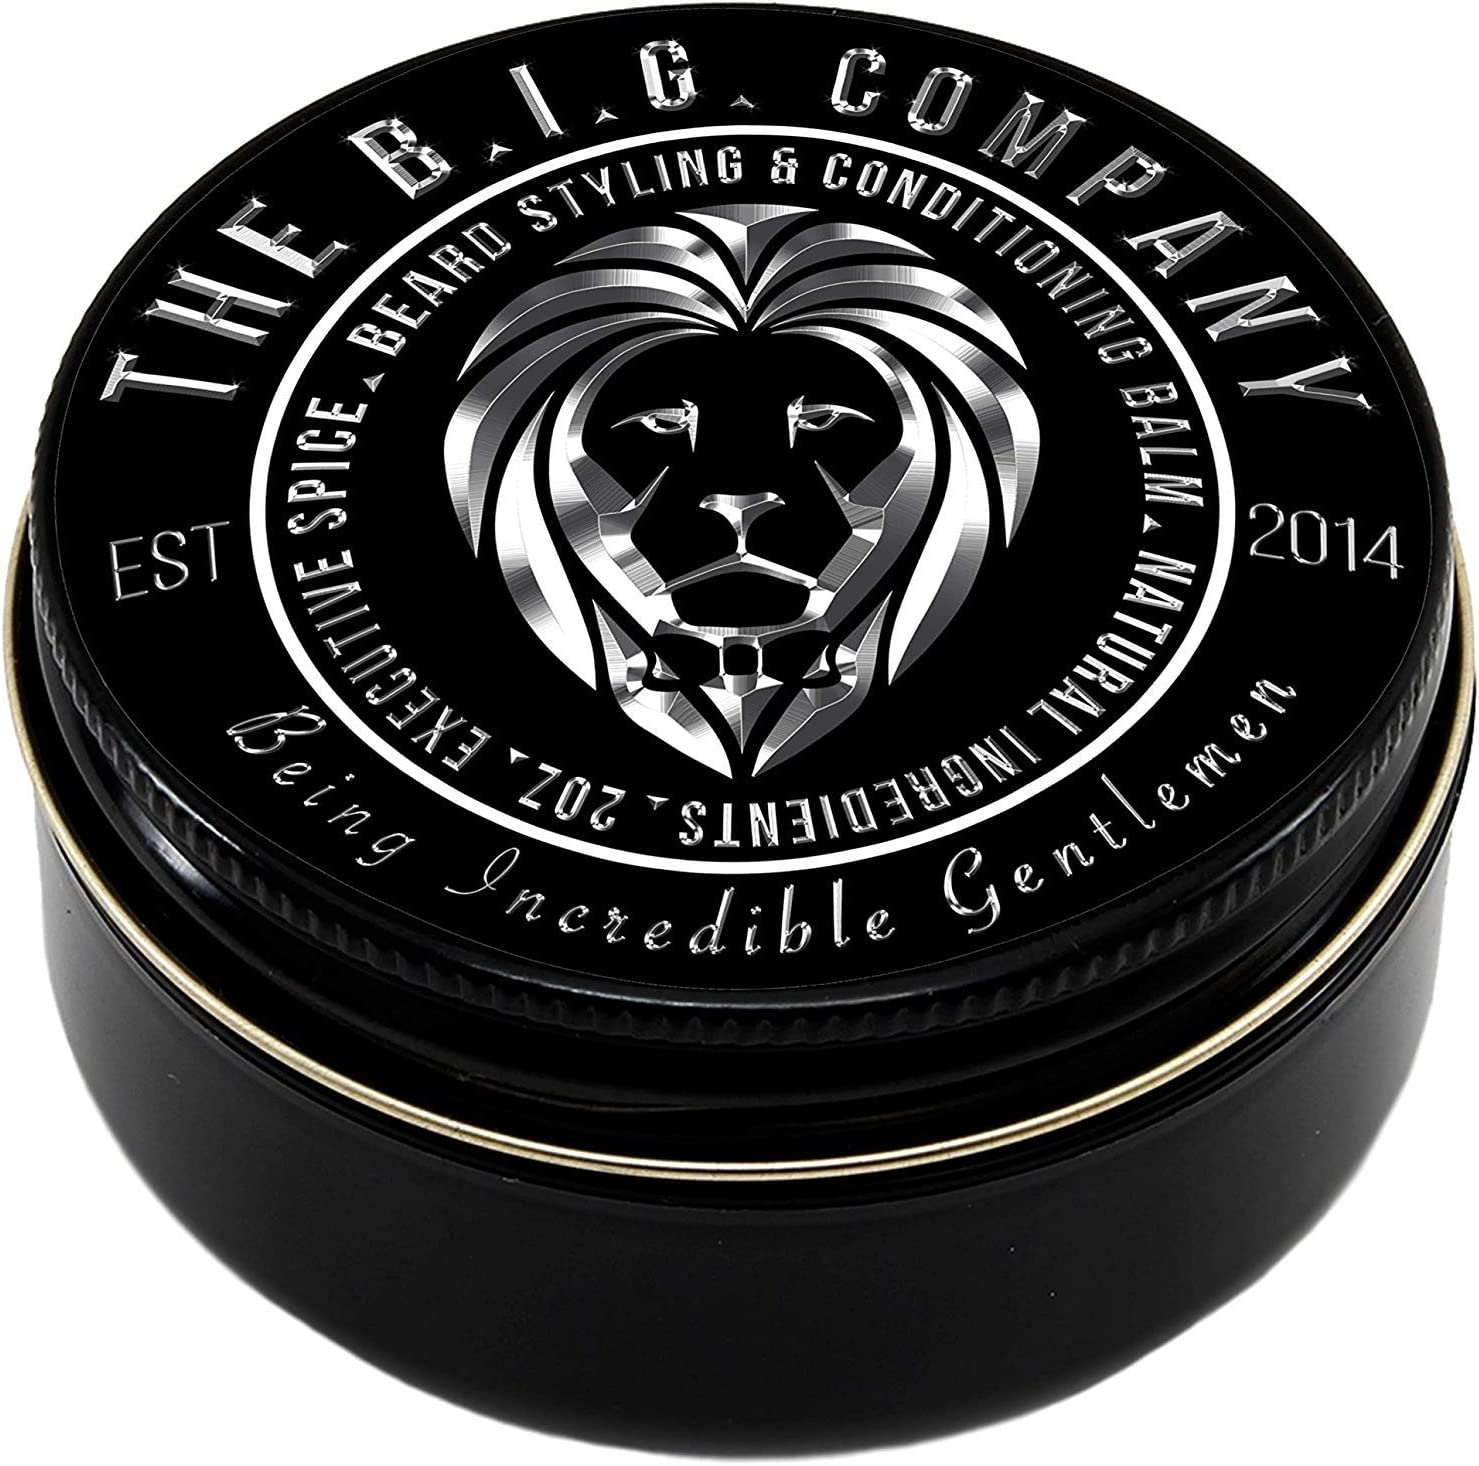 The B.I.G. Company - Beard Balm - Executive Spice Scent - 60 ml